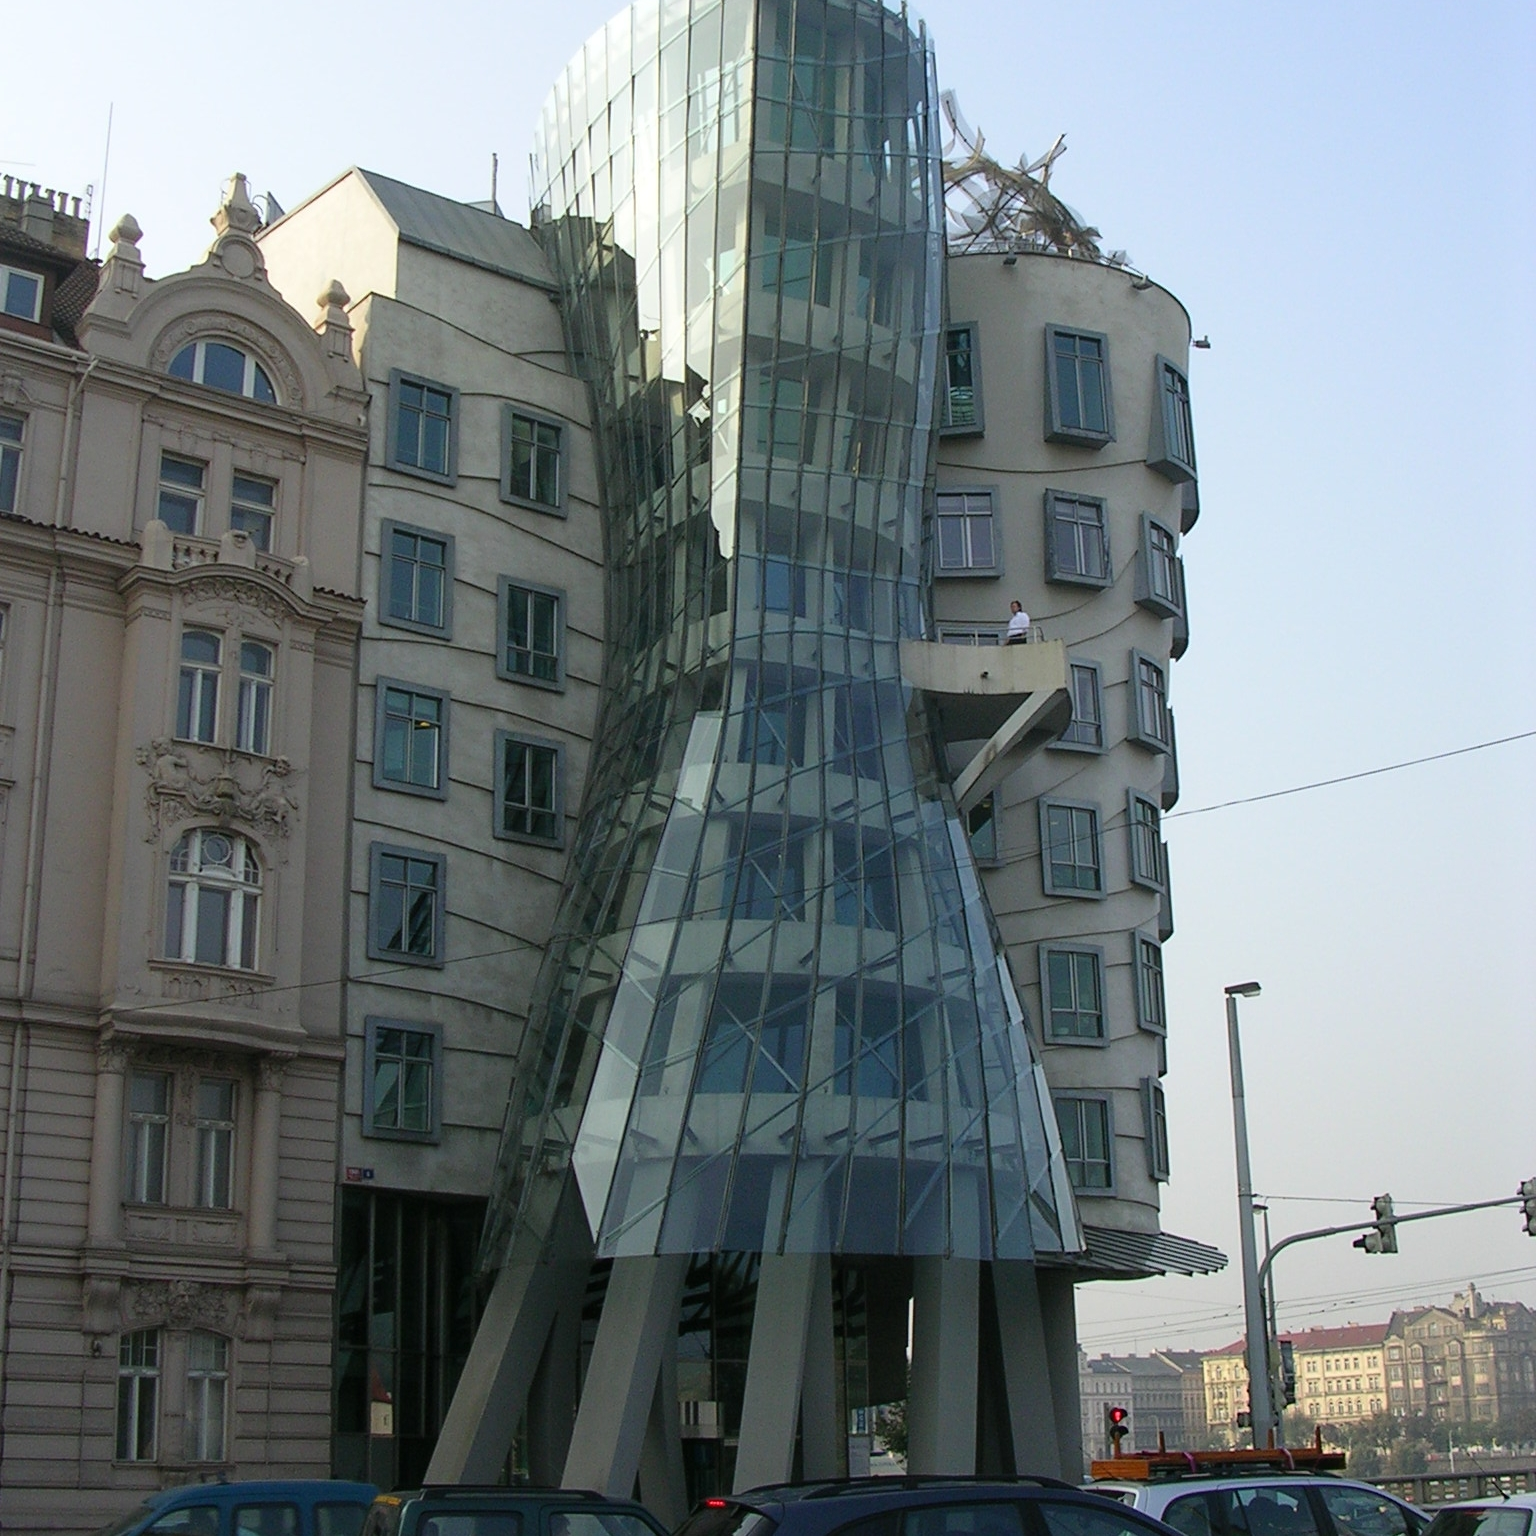 Dancing House, Prague by The Doubtful Traveller